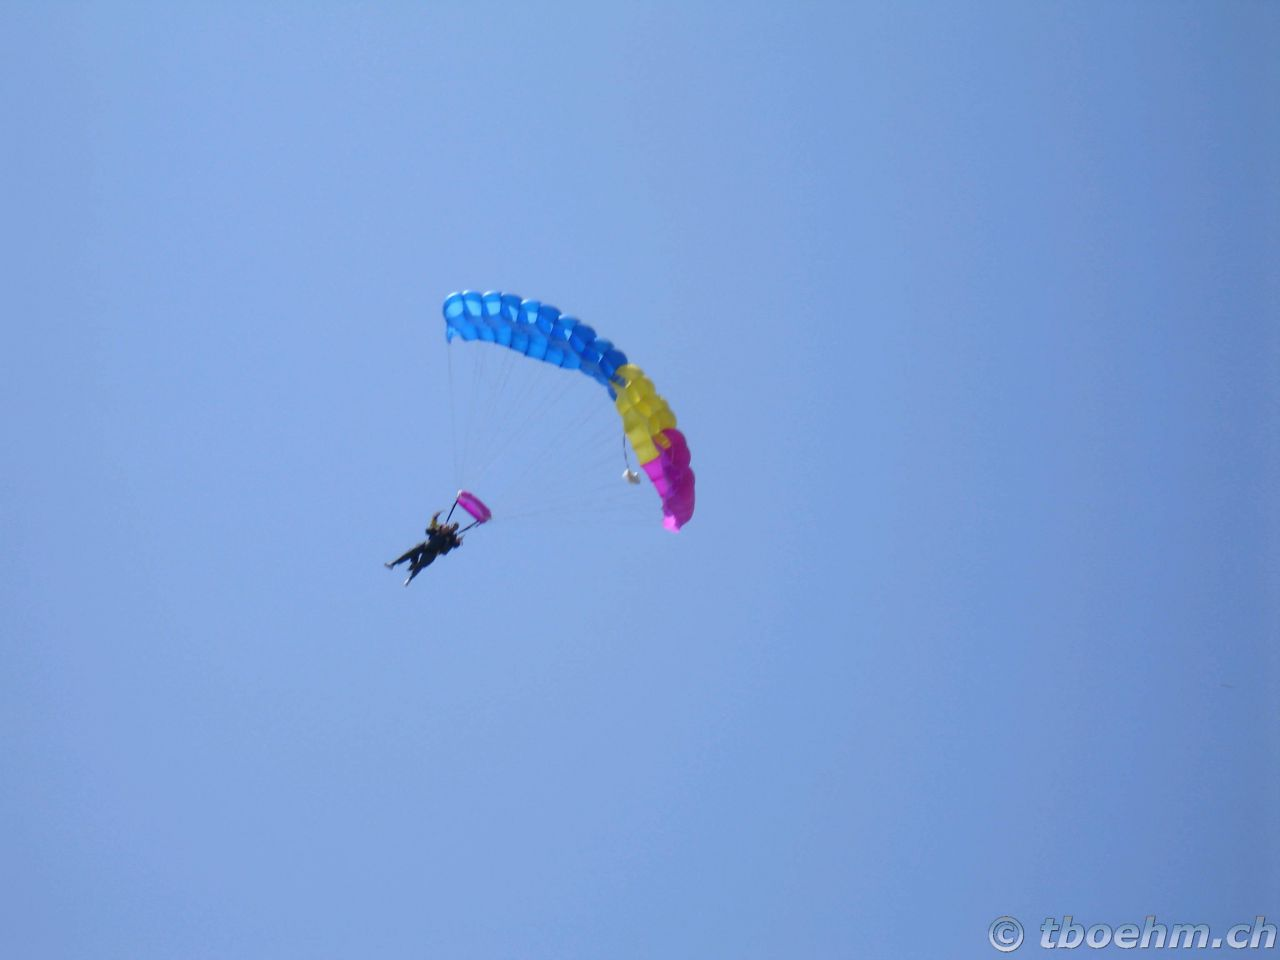 skydive_grenchen_16_07_2006_23_20121125_1108931702